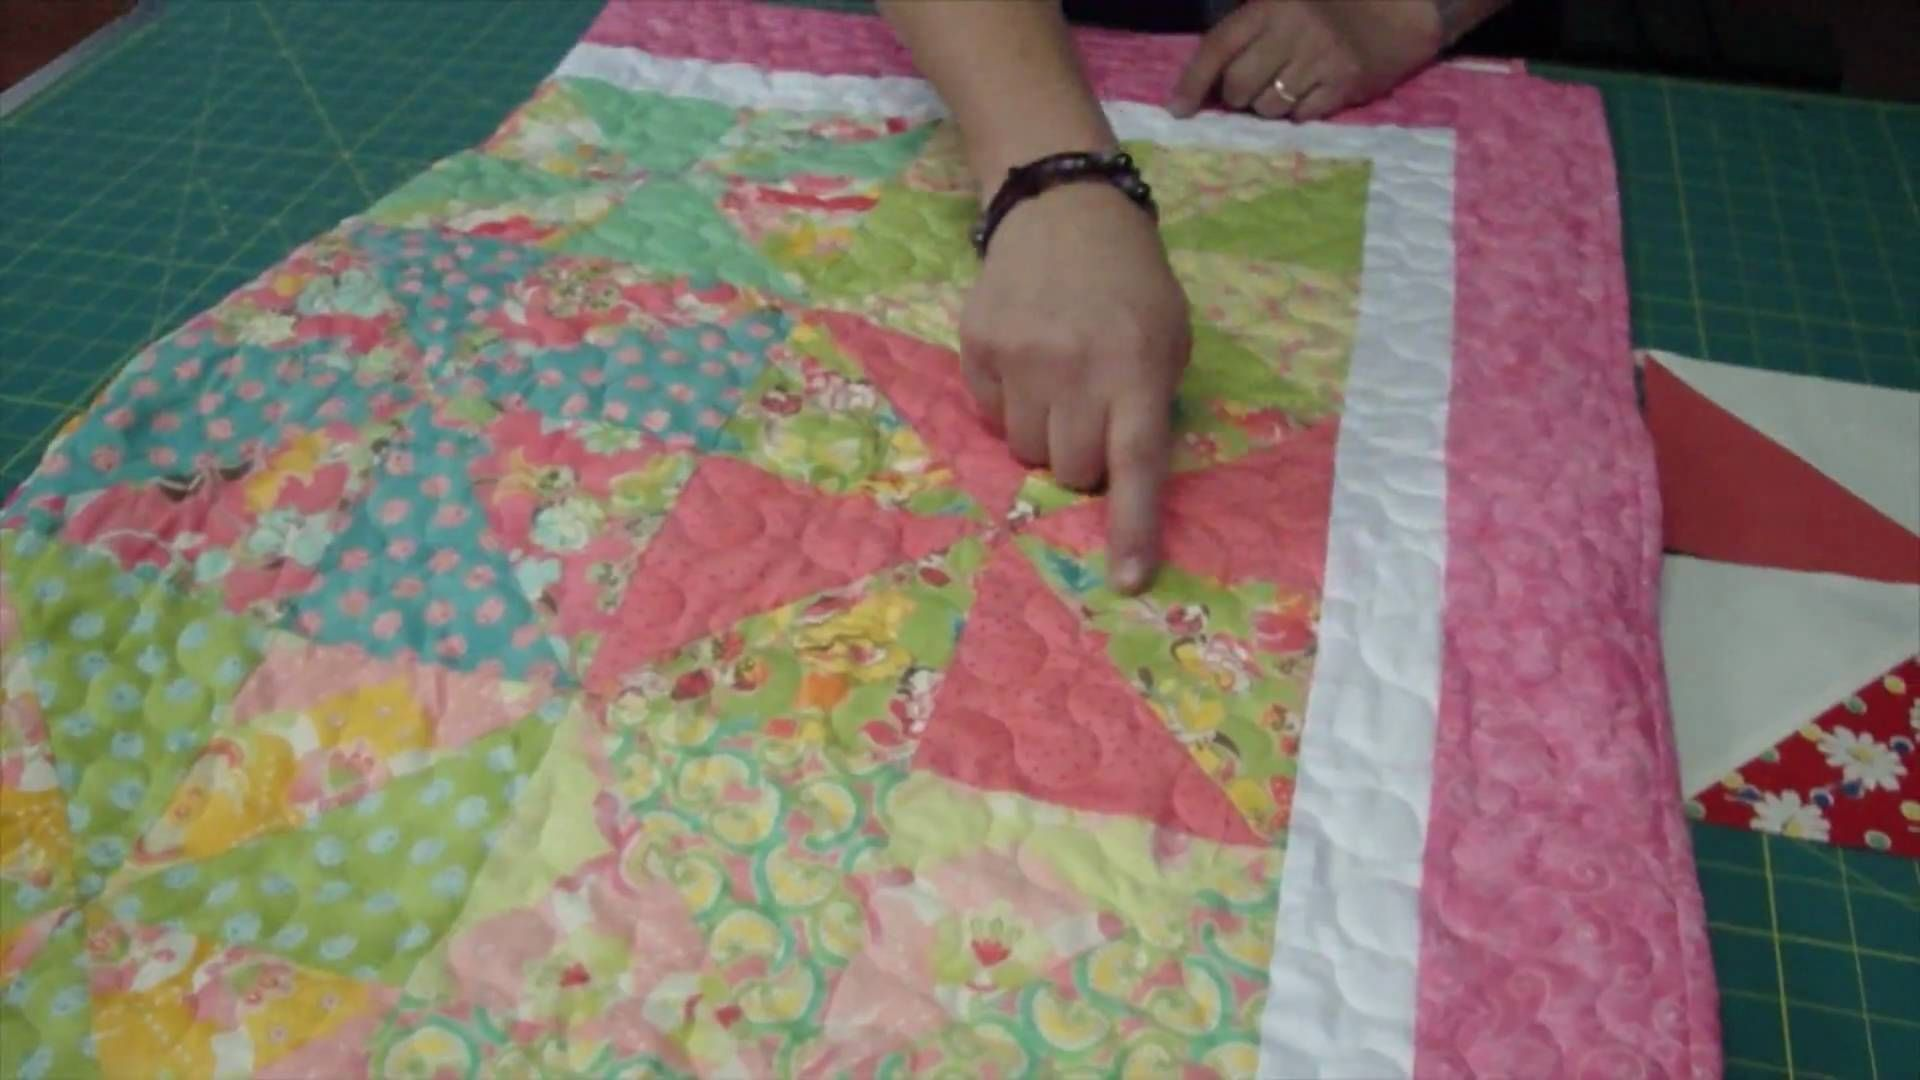 Make a pinwheel quilt with turnovers turnover week via youtube make a pinwheel quilt with turnovers missouri star quilt company video tutorial baditri Images